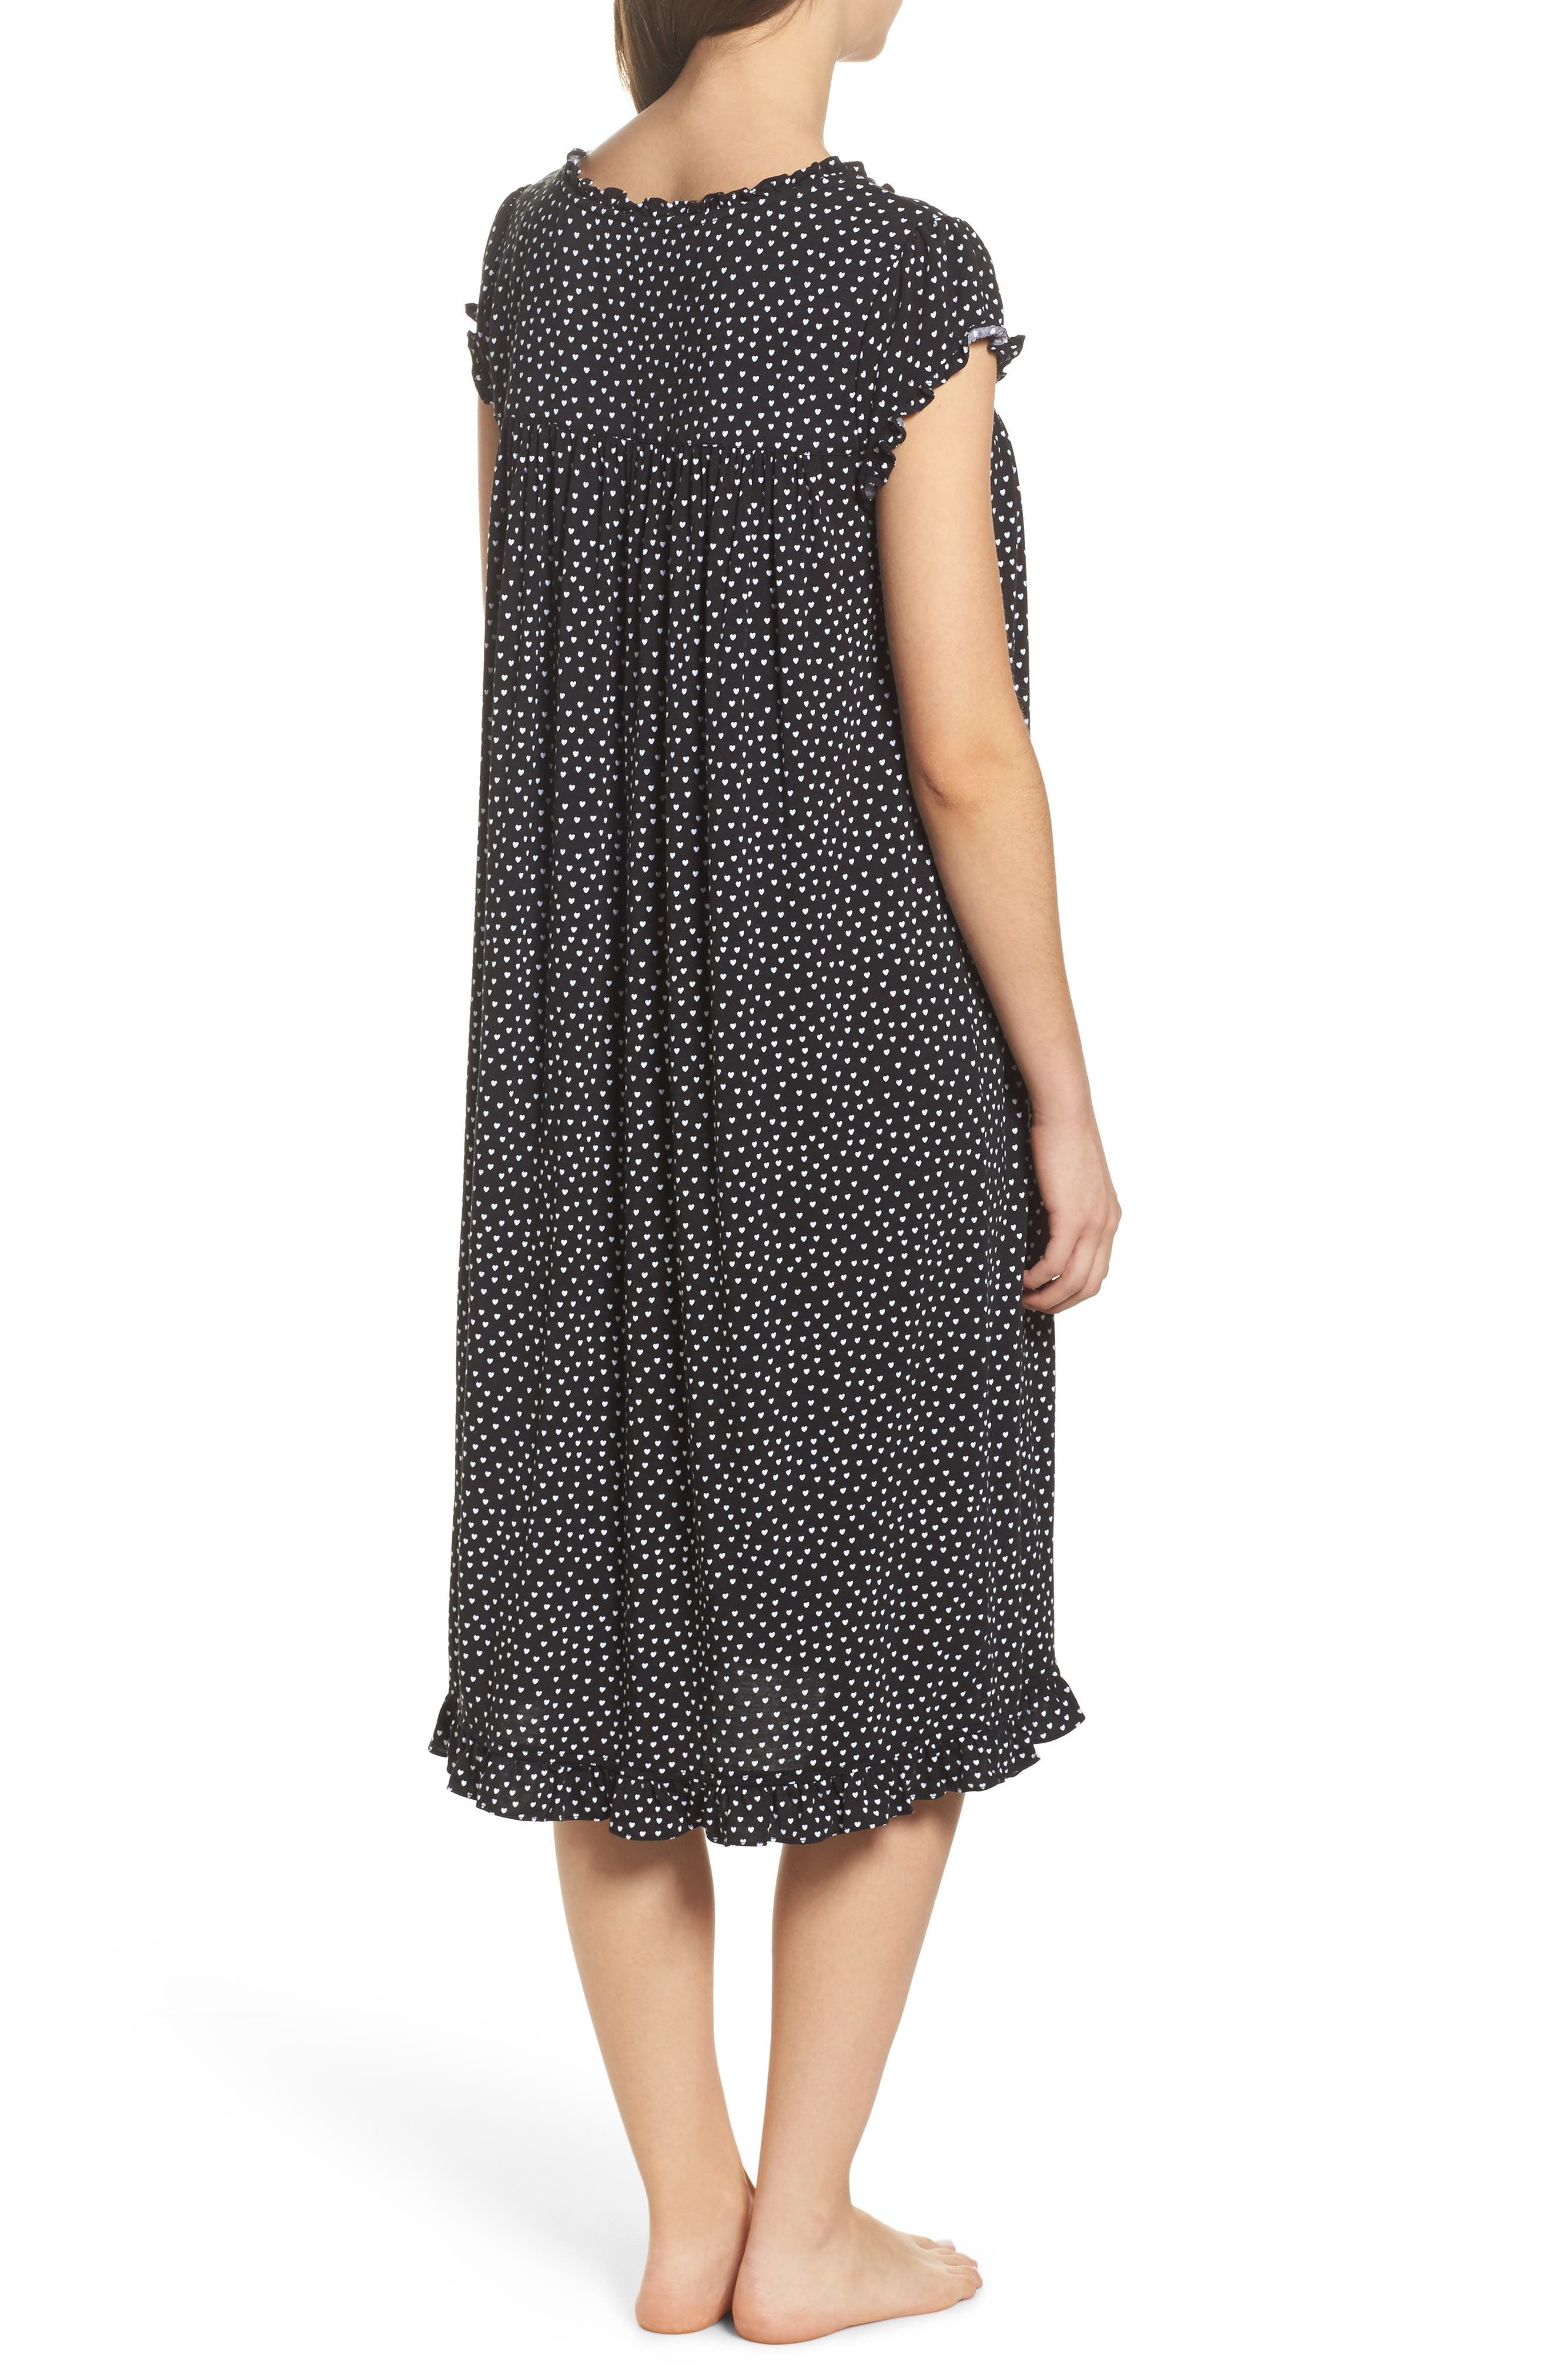 Modal Jersey Nightgown,                             Alternate thumbnail 2, color,                             001